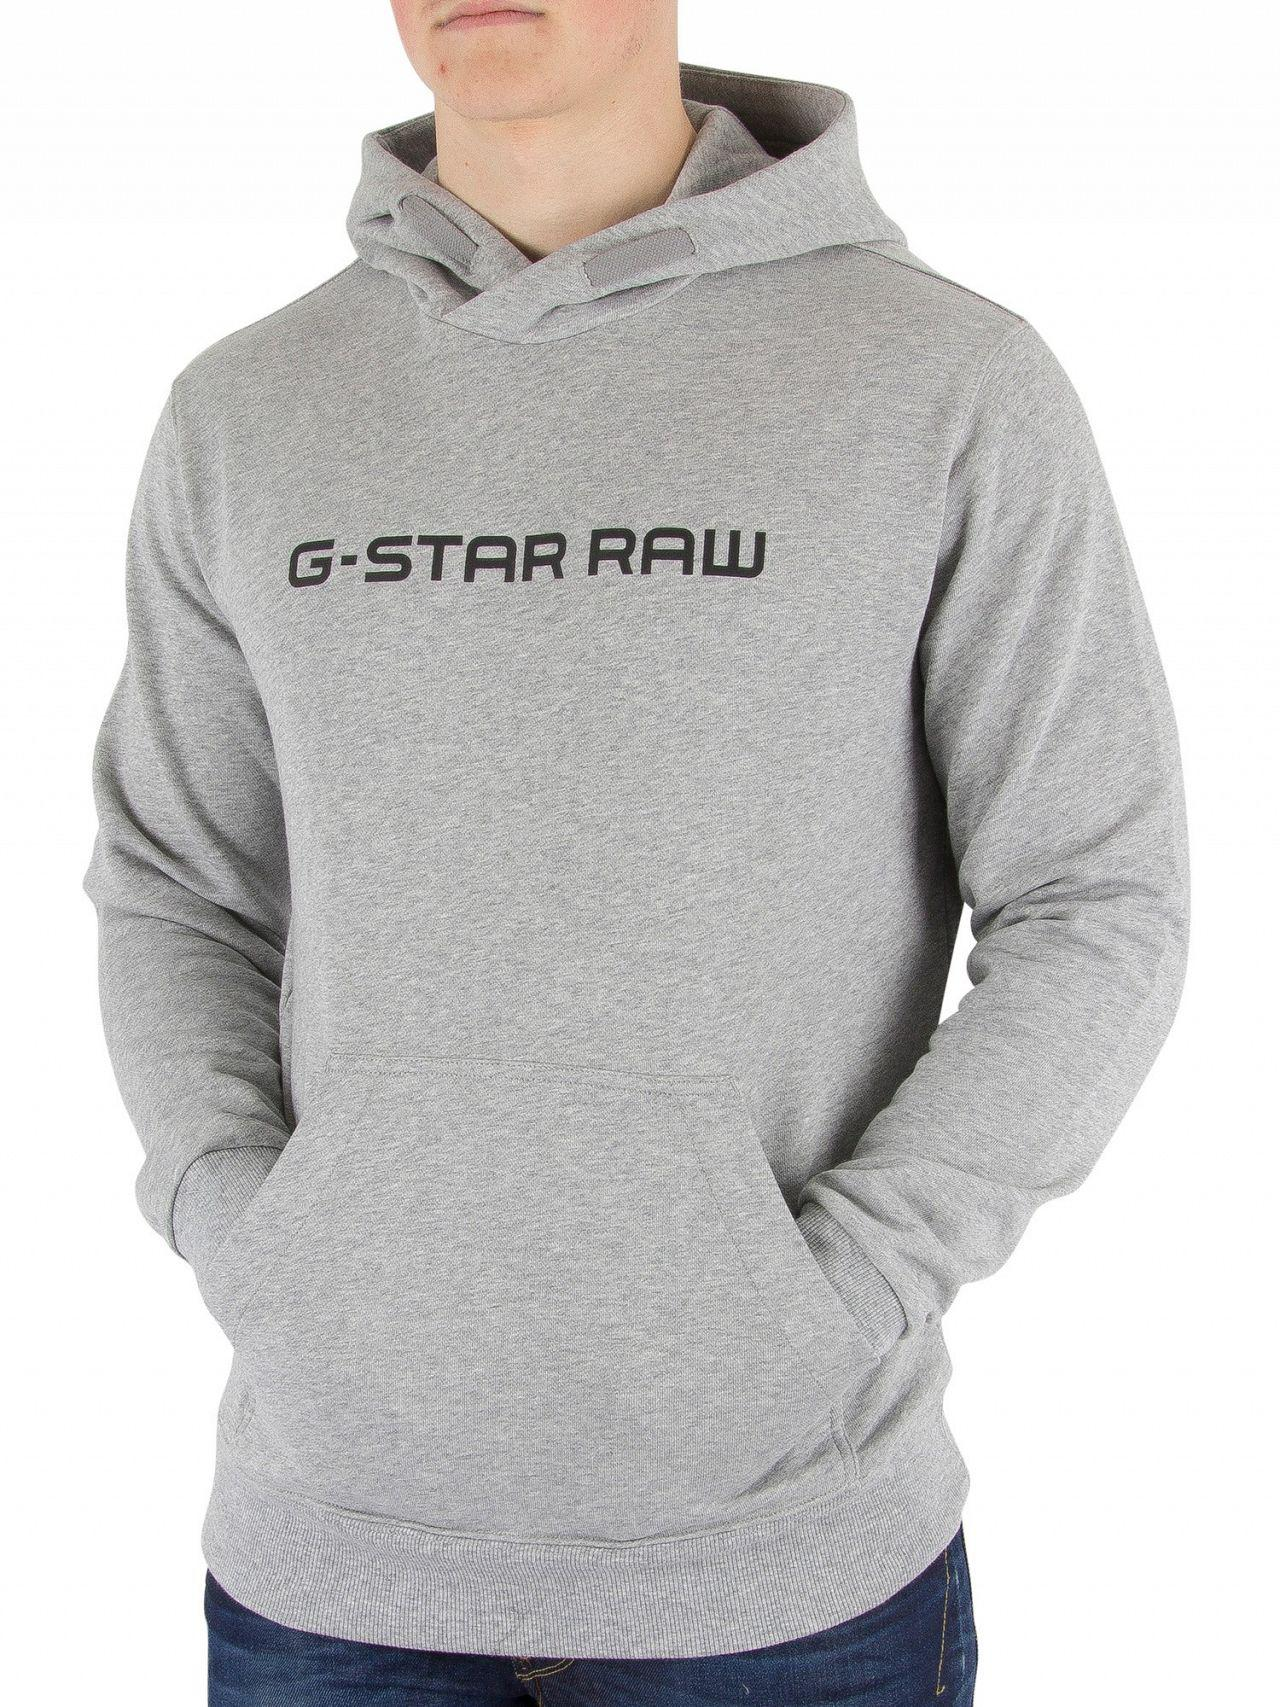 g star raw grey heather loaq pullover hoodie in gray for. Black Bedroom Furniture Sets. Home Design Ideas